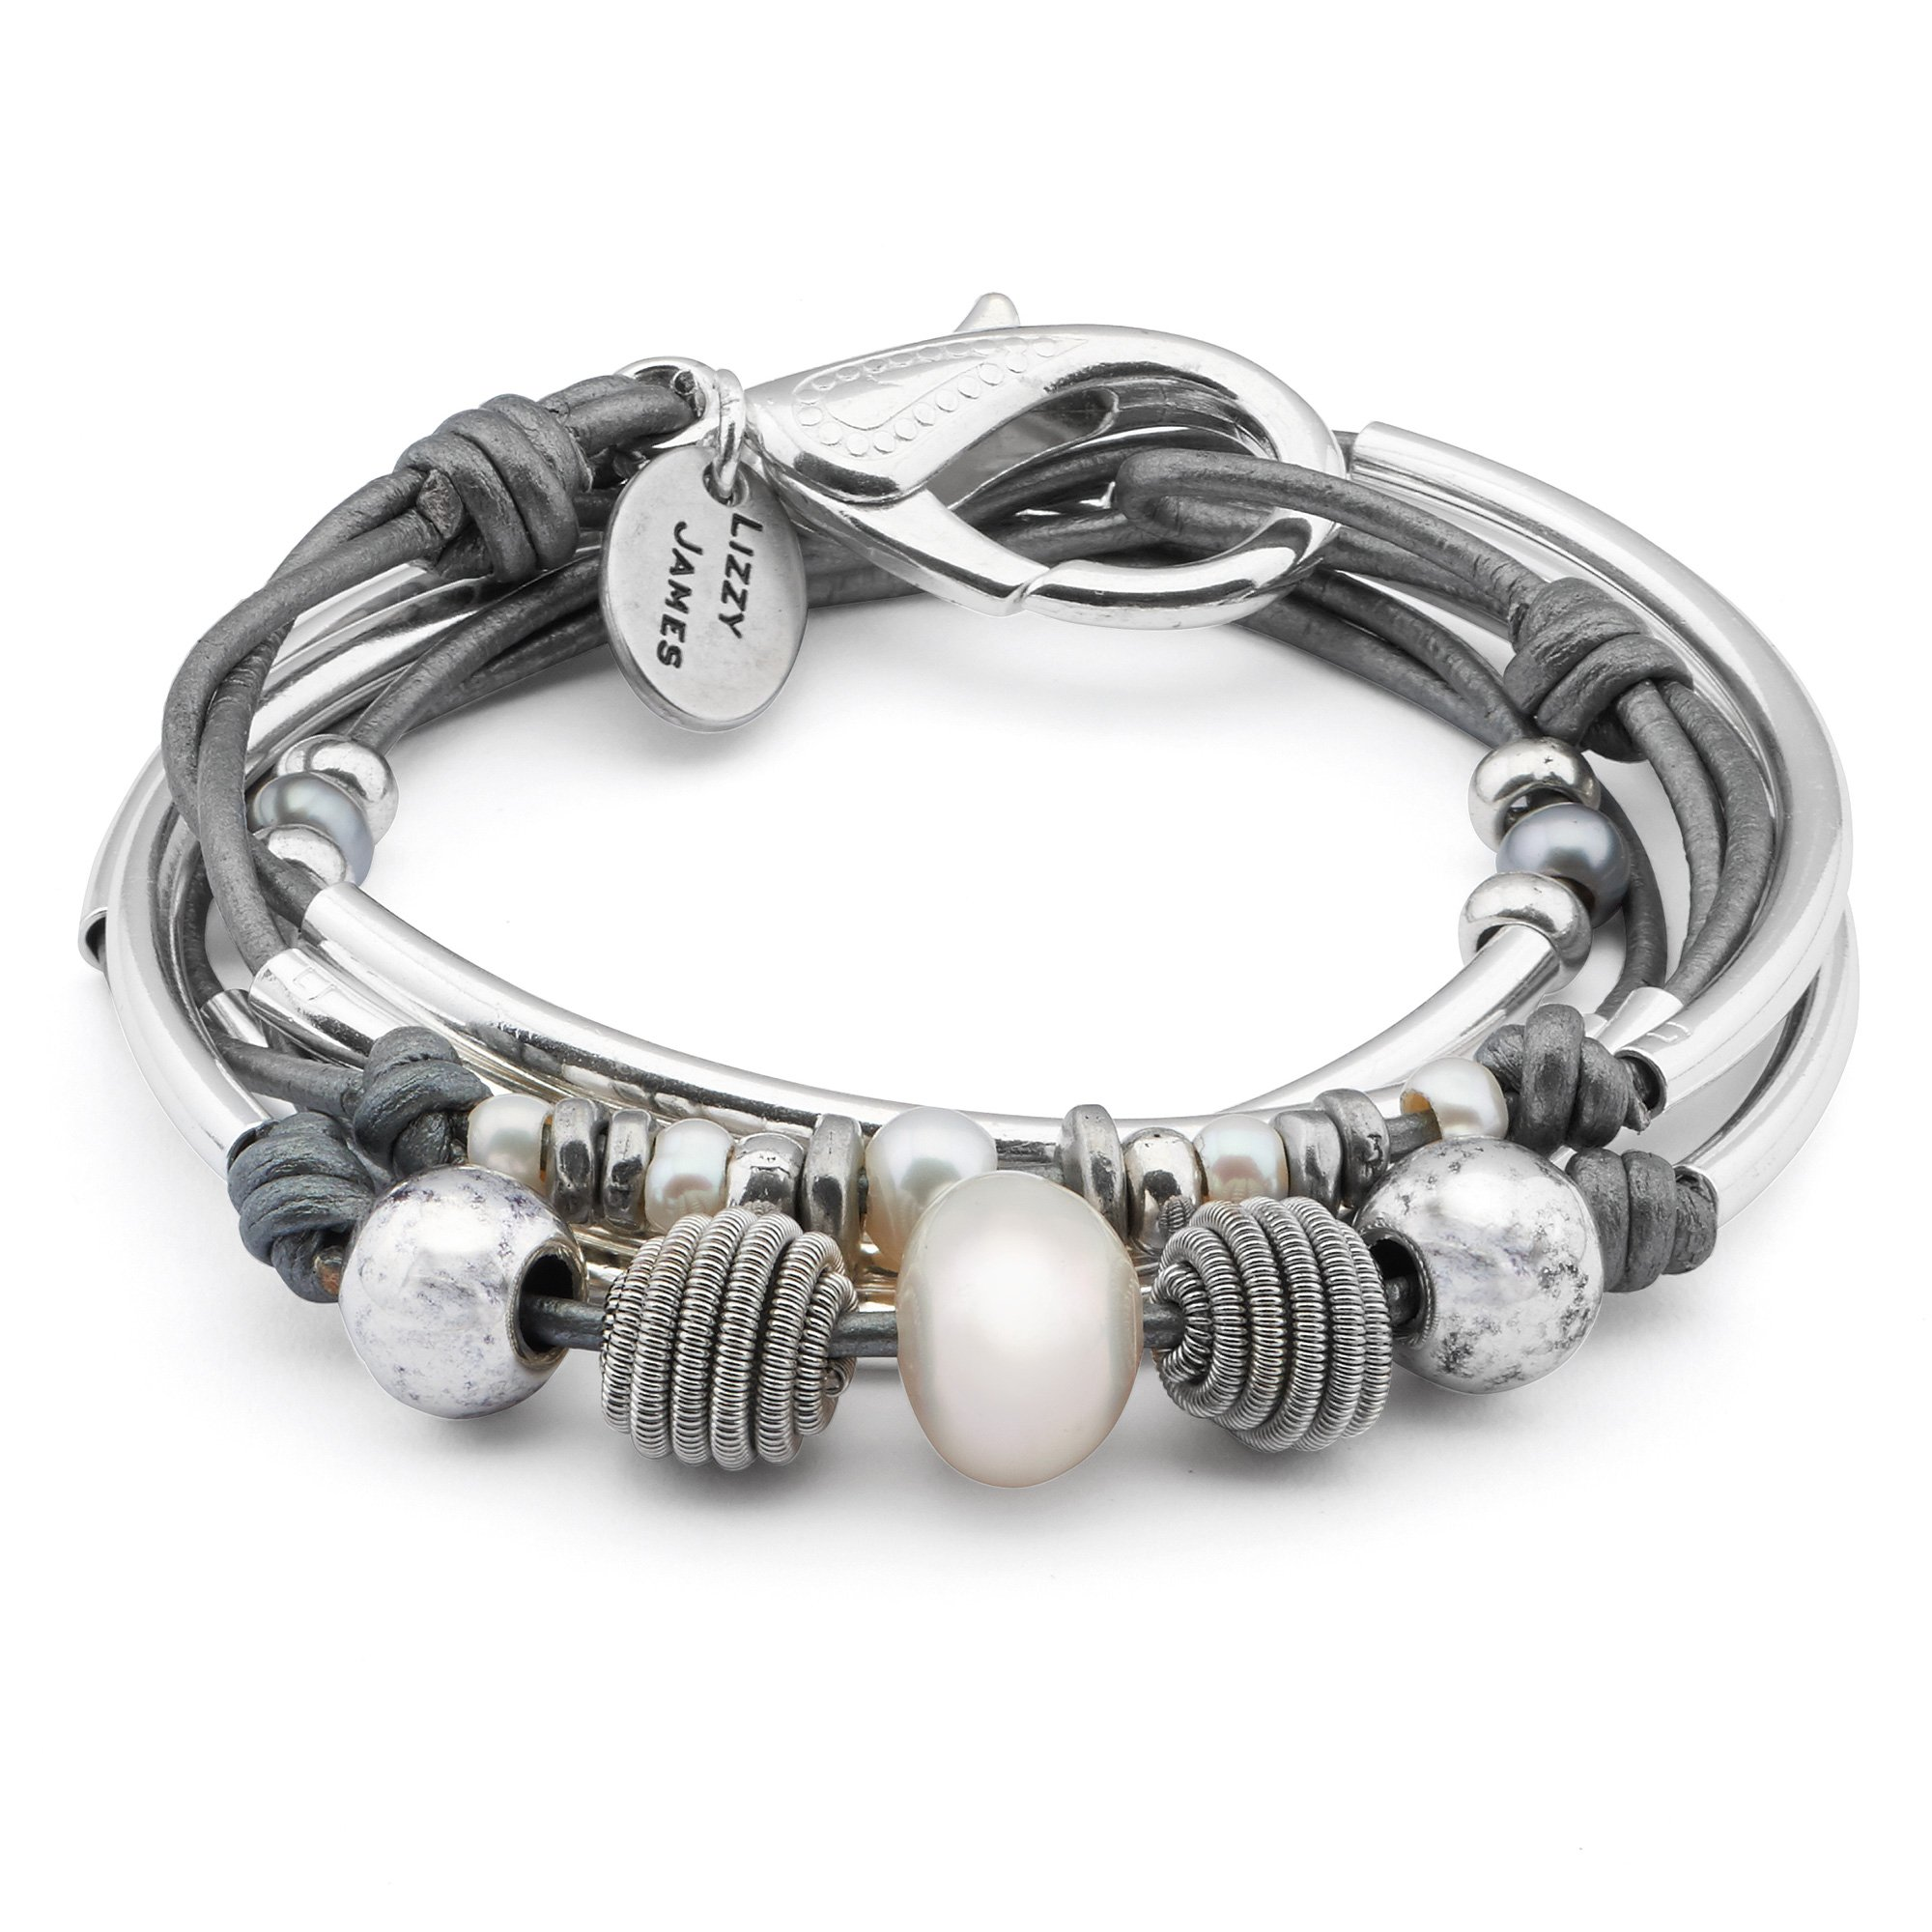 Maribel 2 Strand Wrap Bracelet Necklace in Silver Plate and Metallic Silver Leather with Freshwater Pearl (MEDIUM)